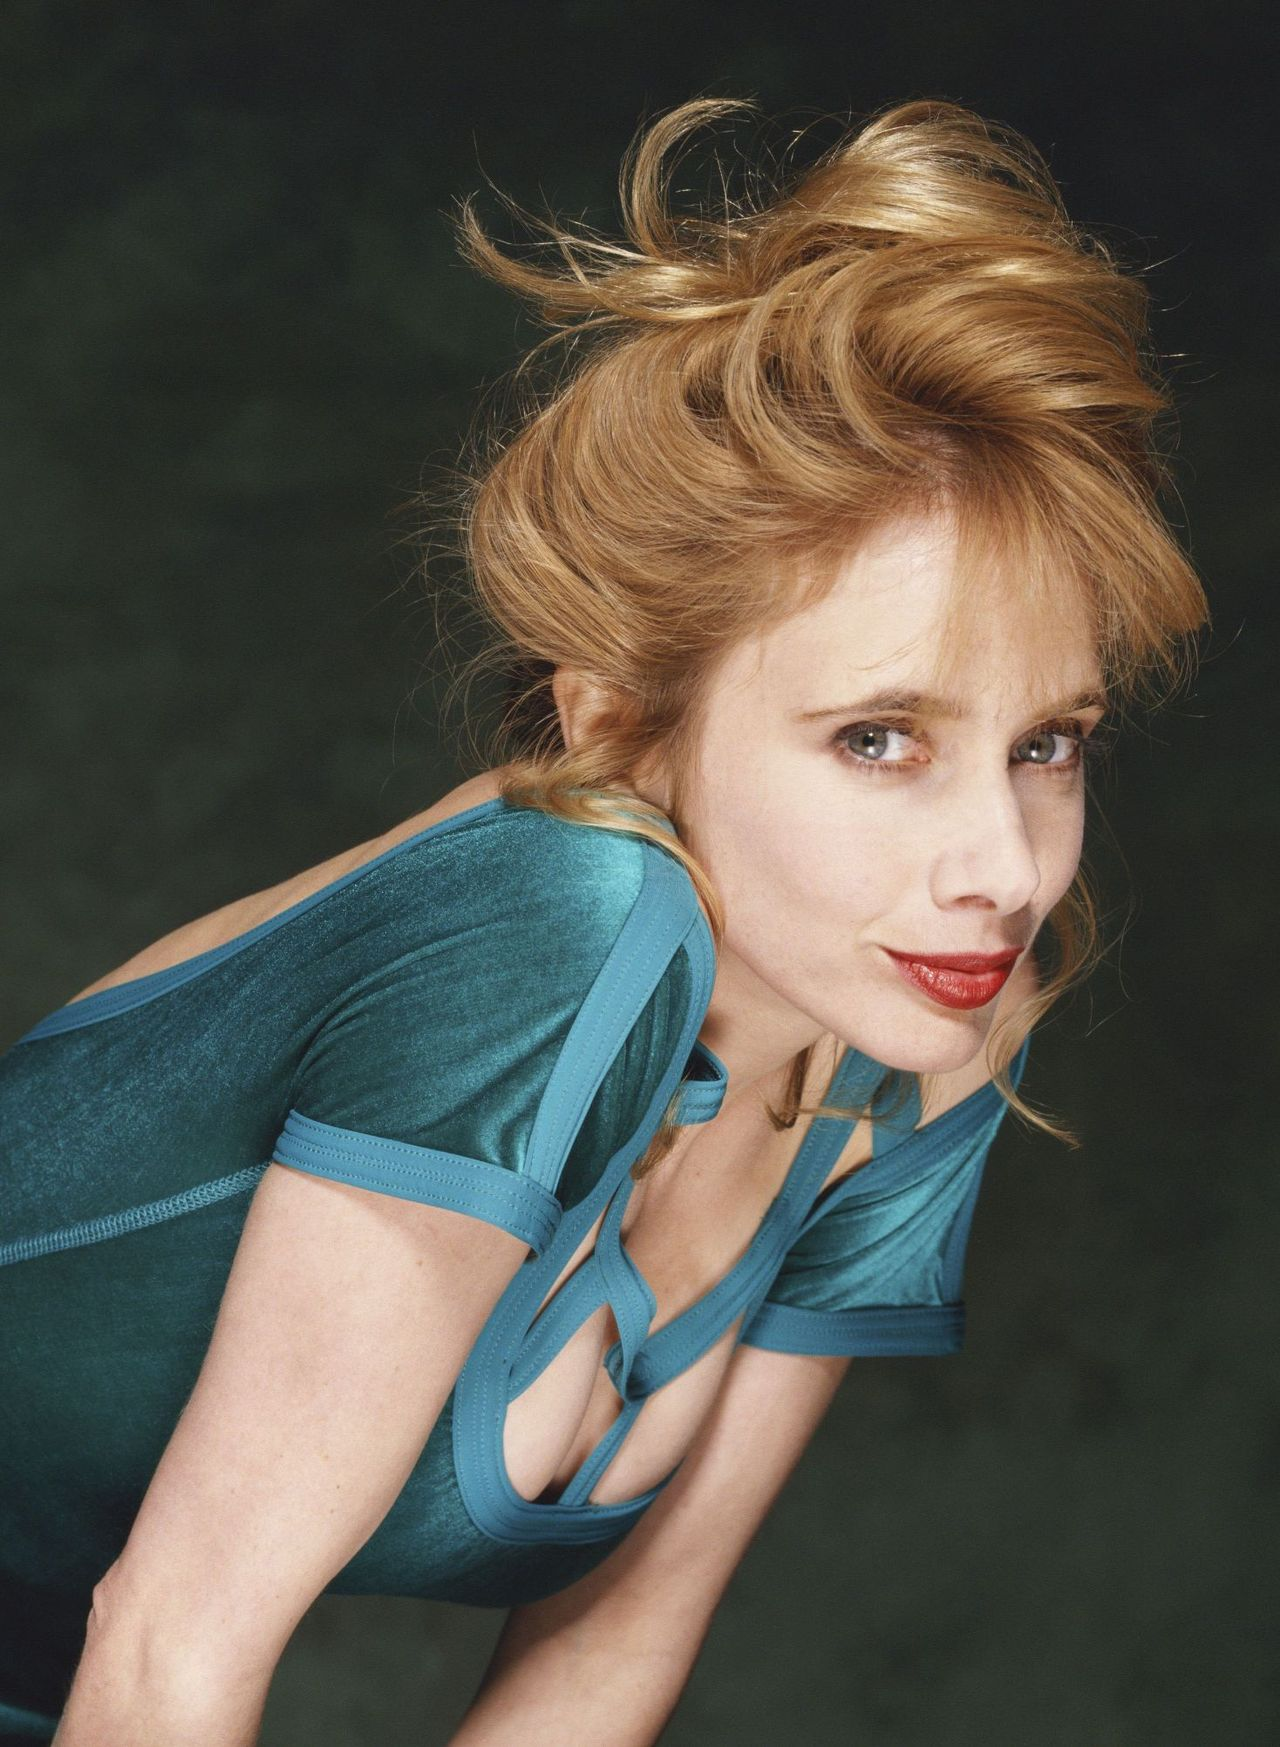 Rosanna Arquette younger photo one at pinterest.com